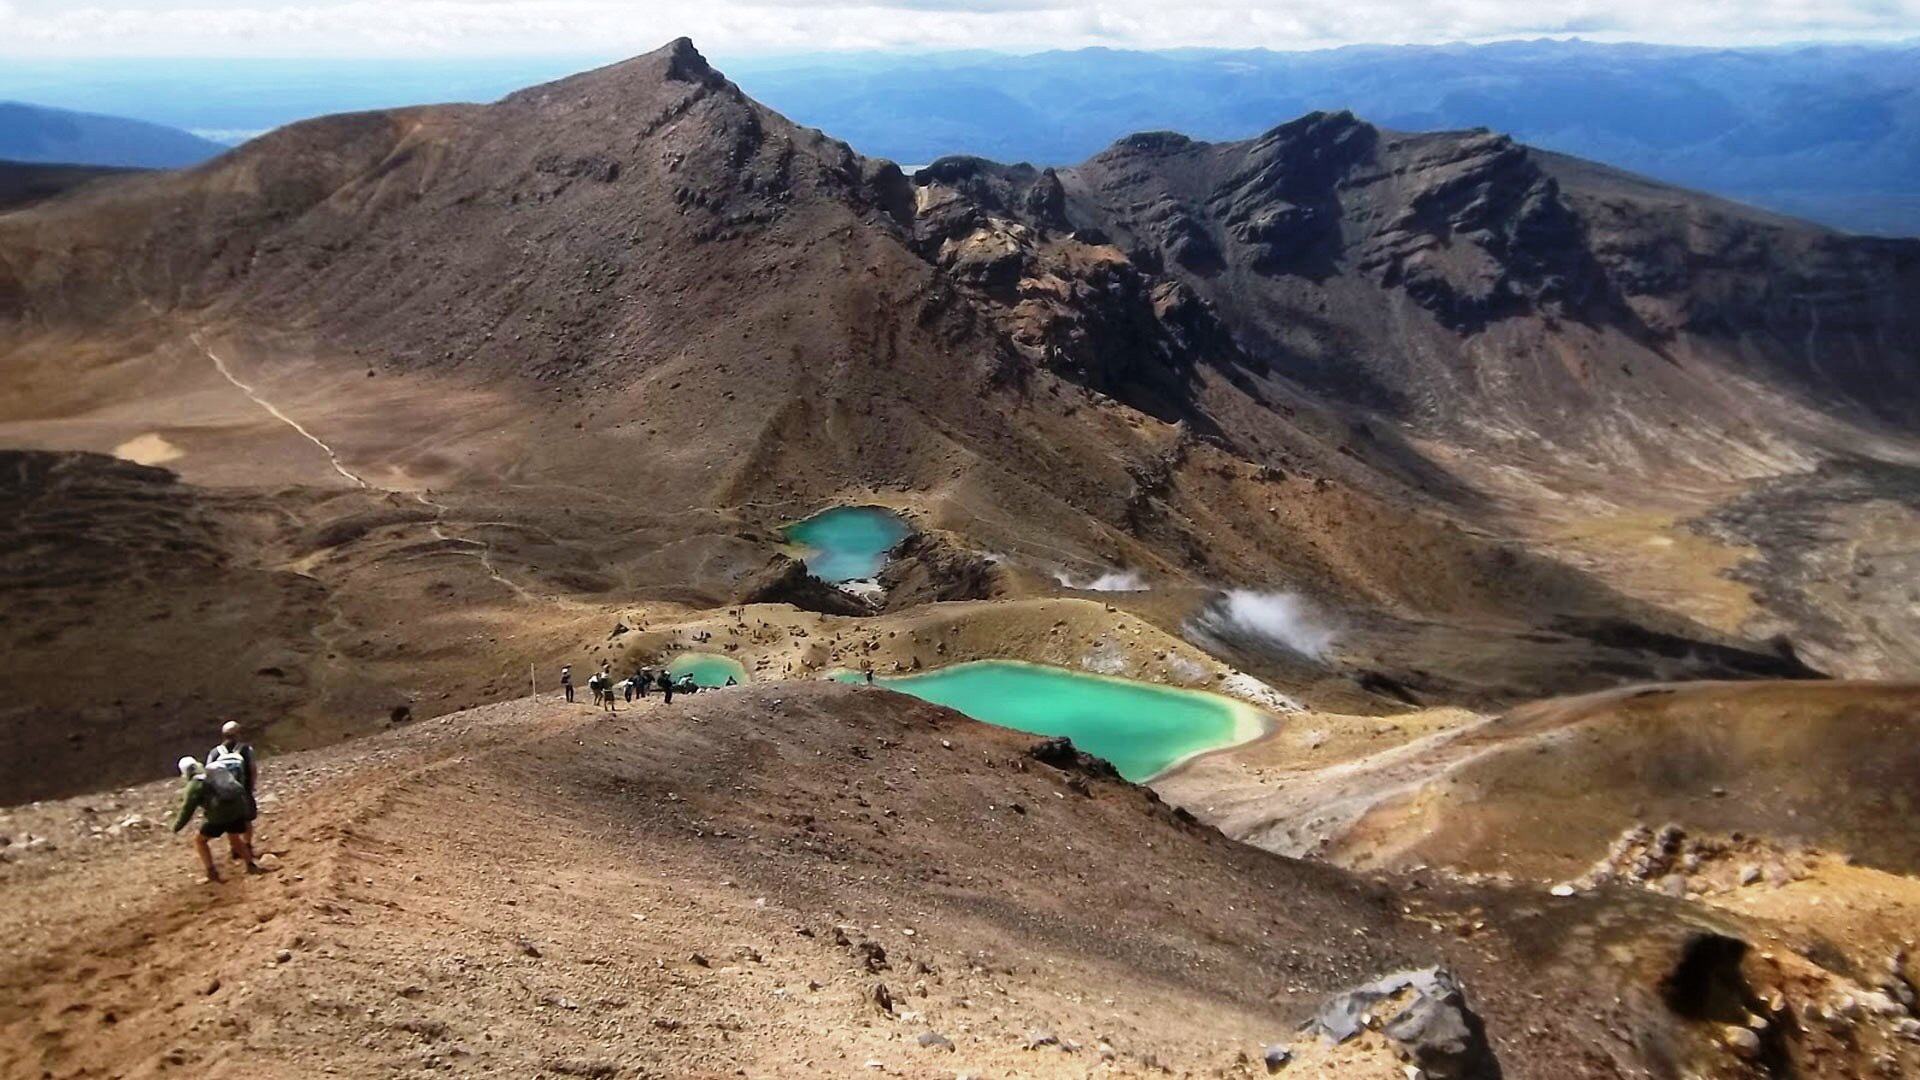 Tongariro National Park | Top Places to Visit Around the World